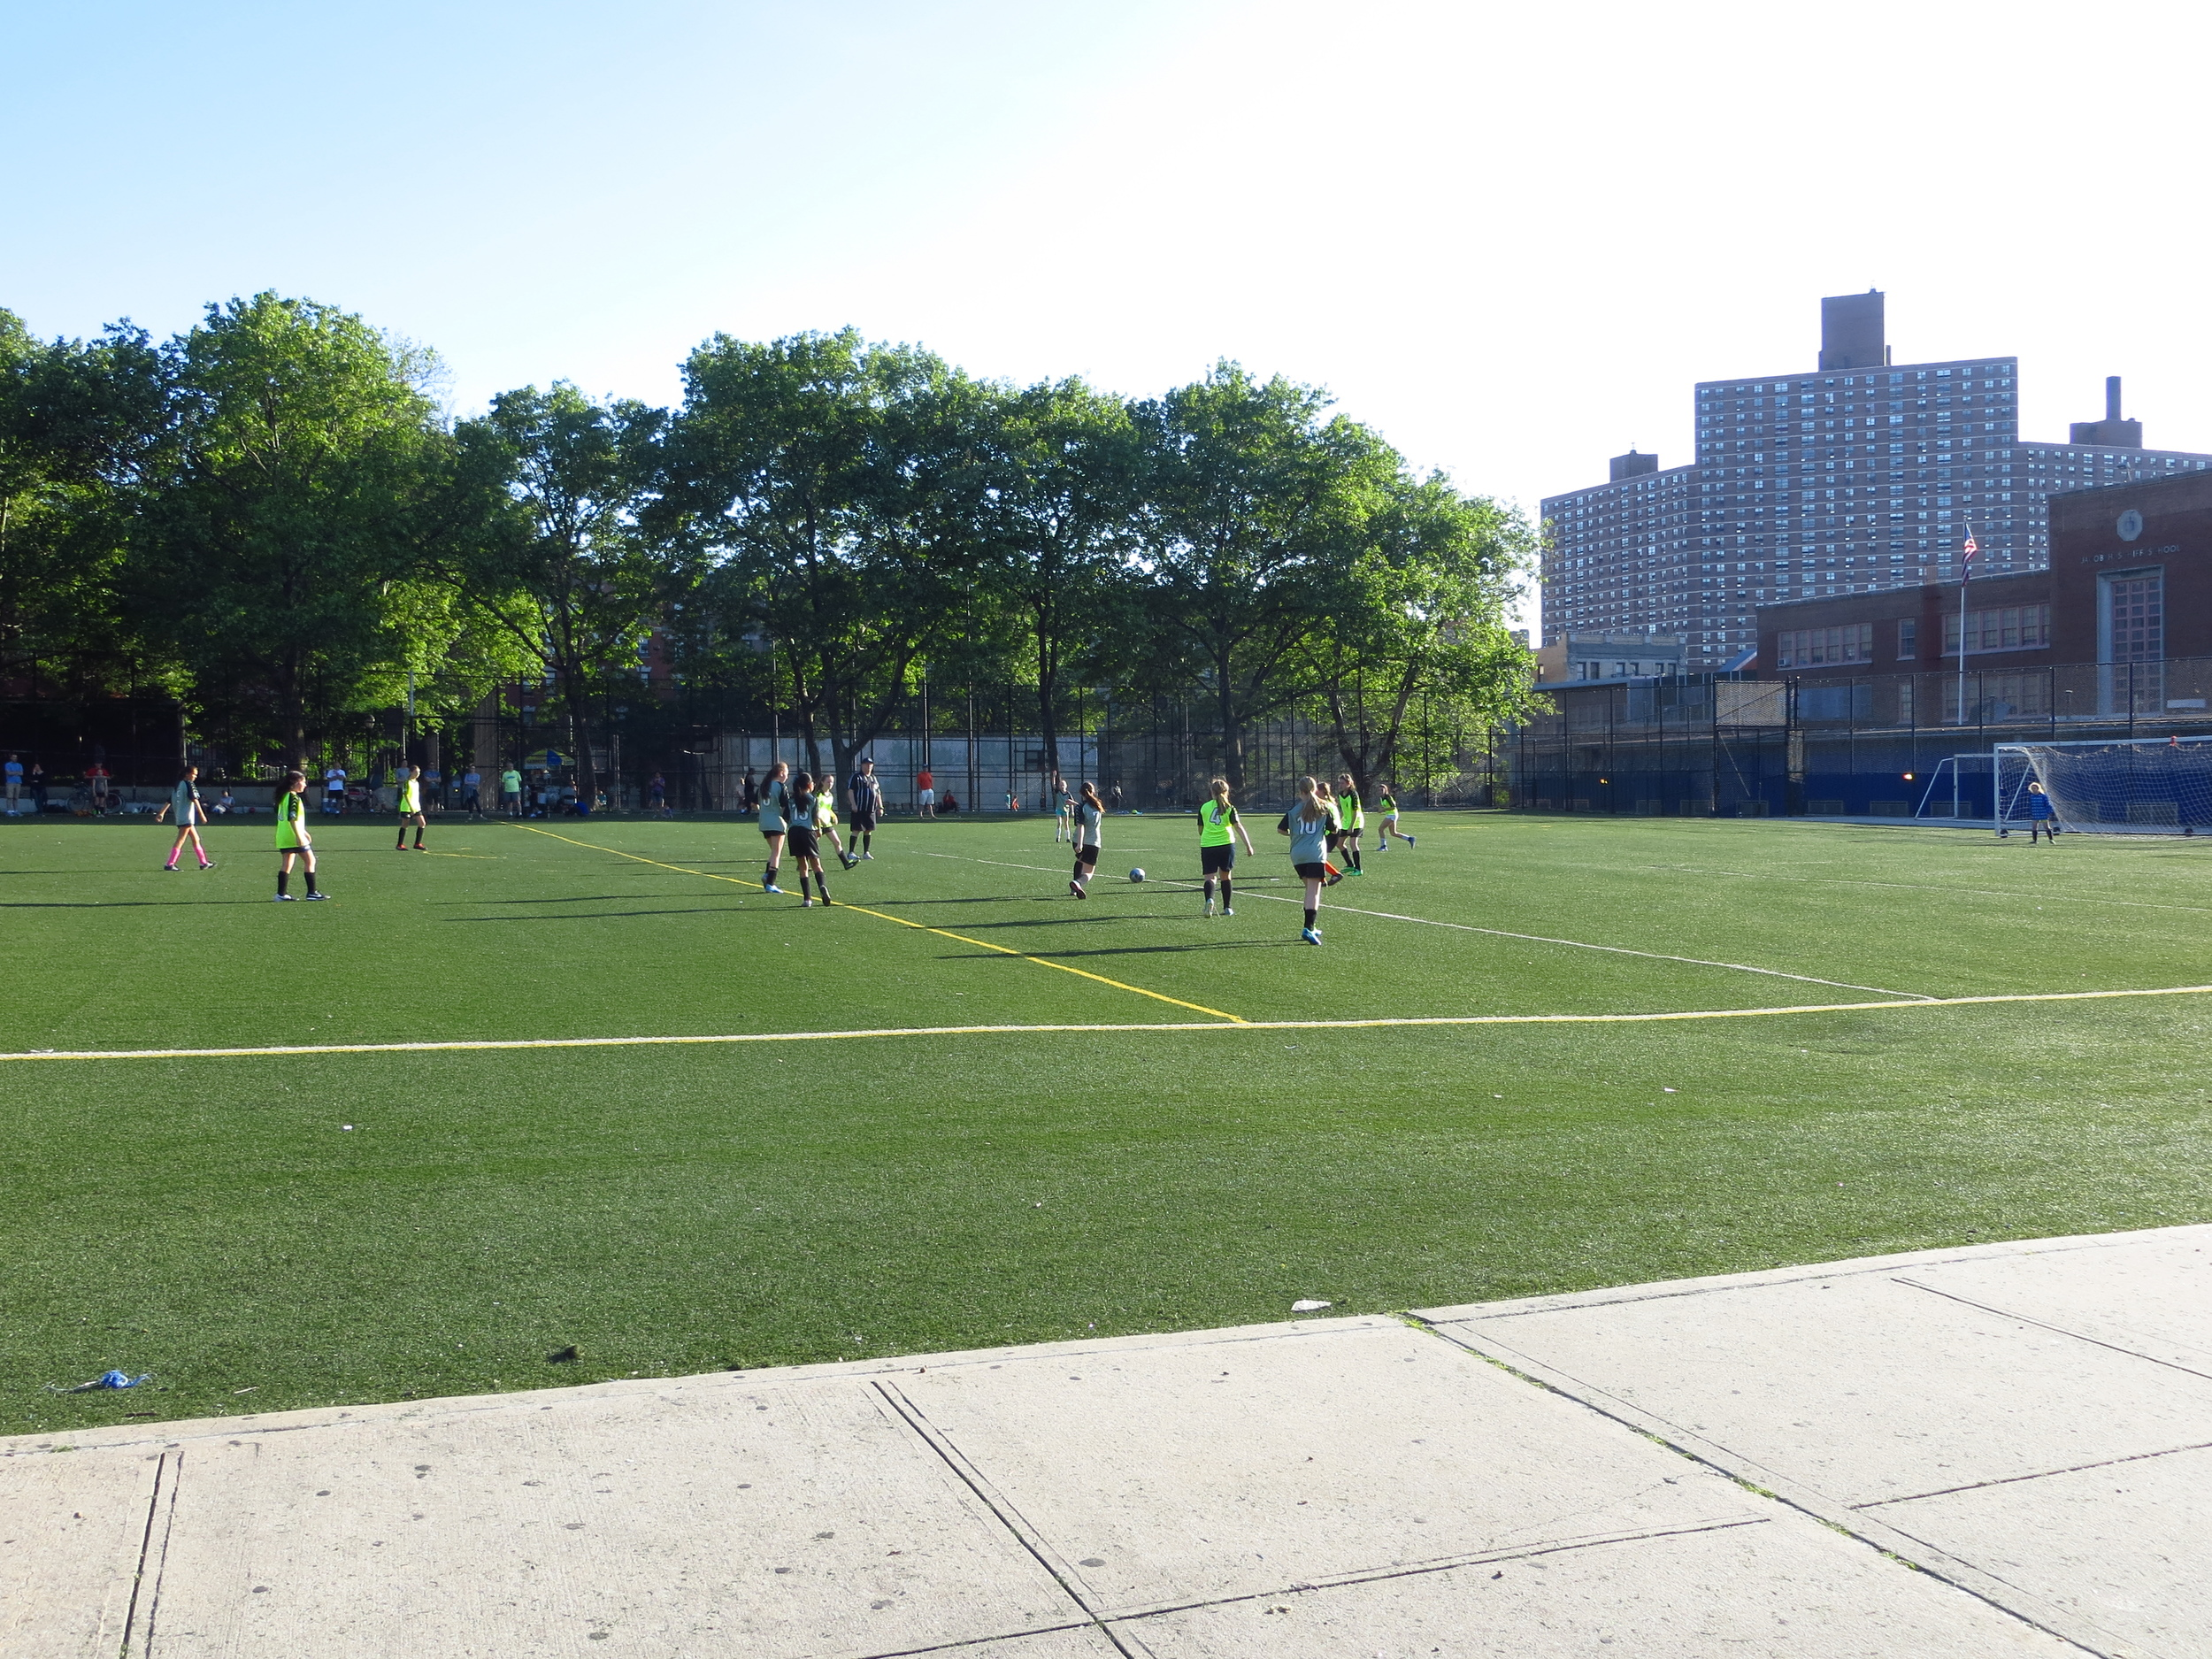 Afternoon soccer game